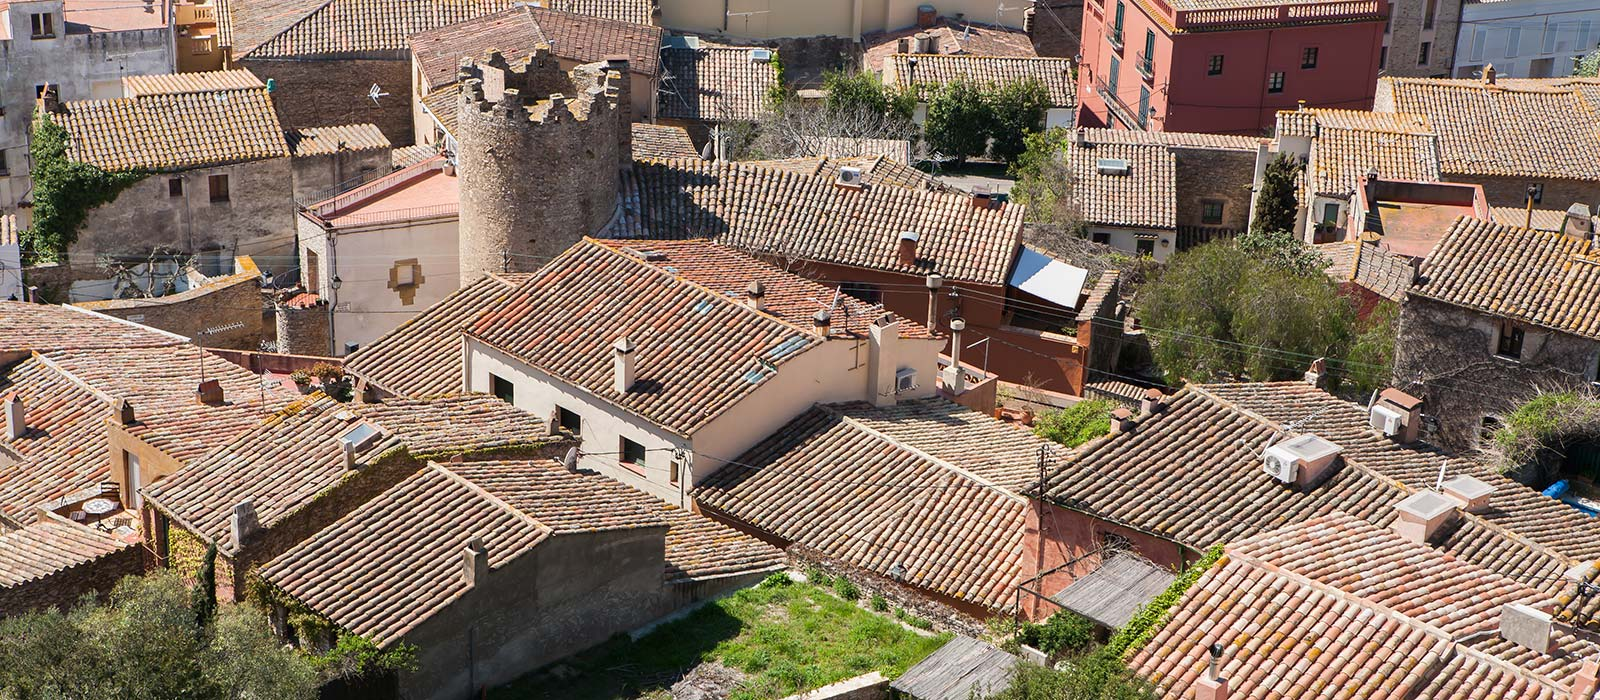 Costa Brava Begur, houses with red tiles and defensetower